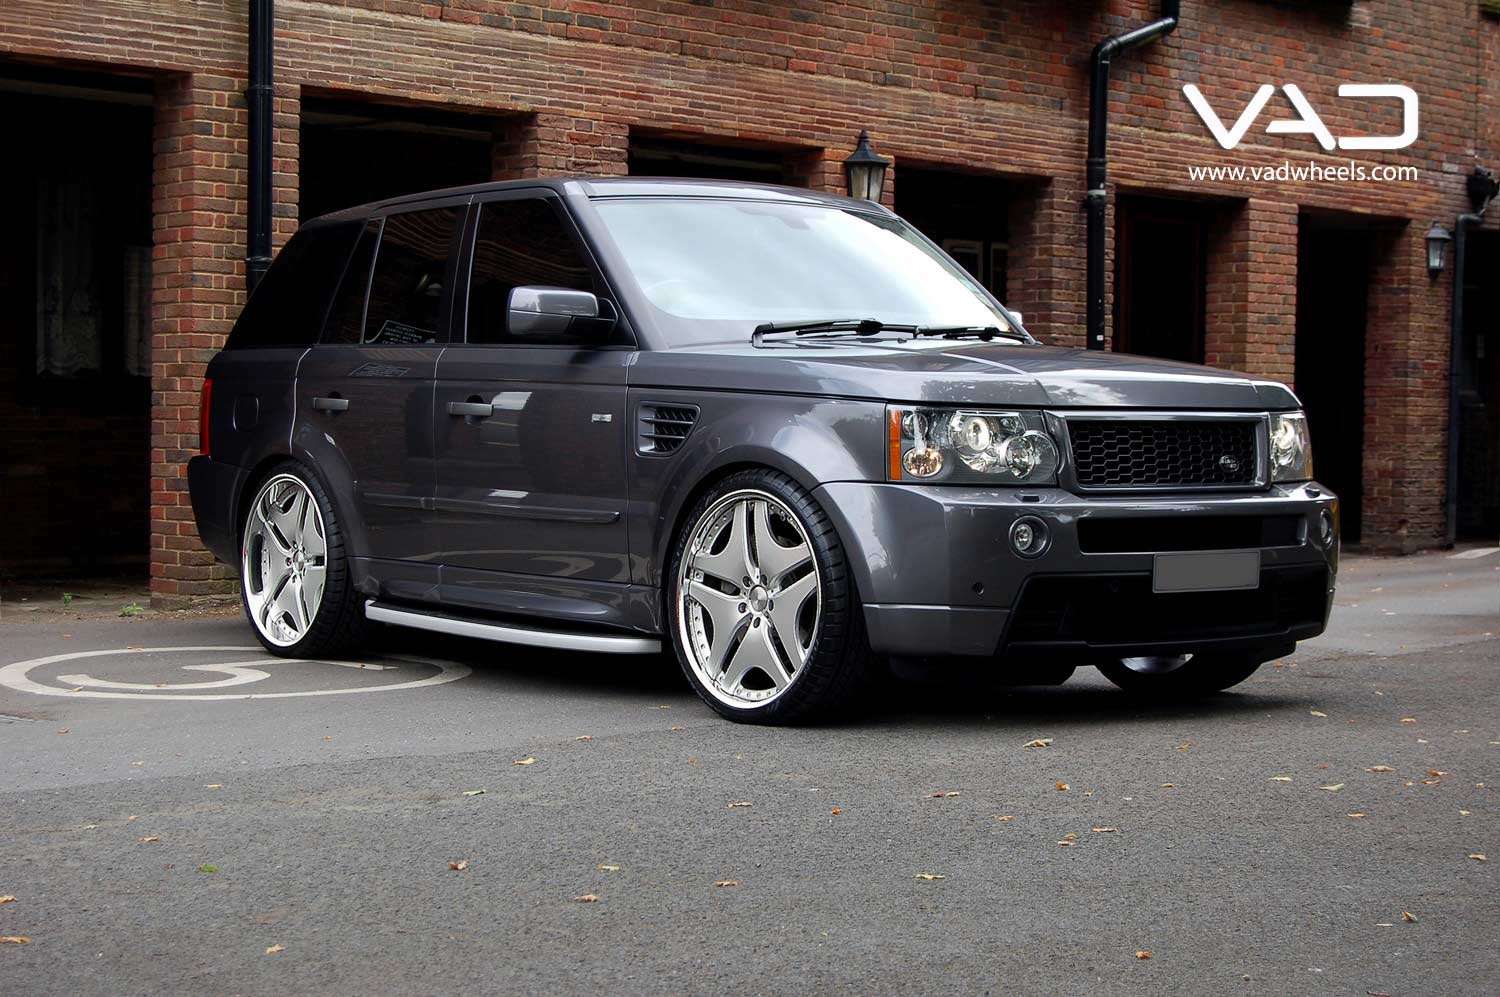 Range-Rover-HST-Fitted-with-22''-Trafficstar-RTV-Silver-Staggered-Fit